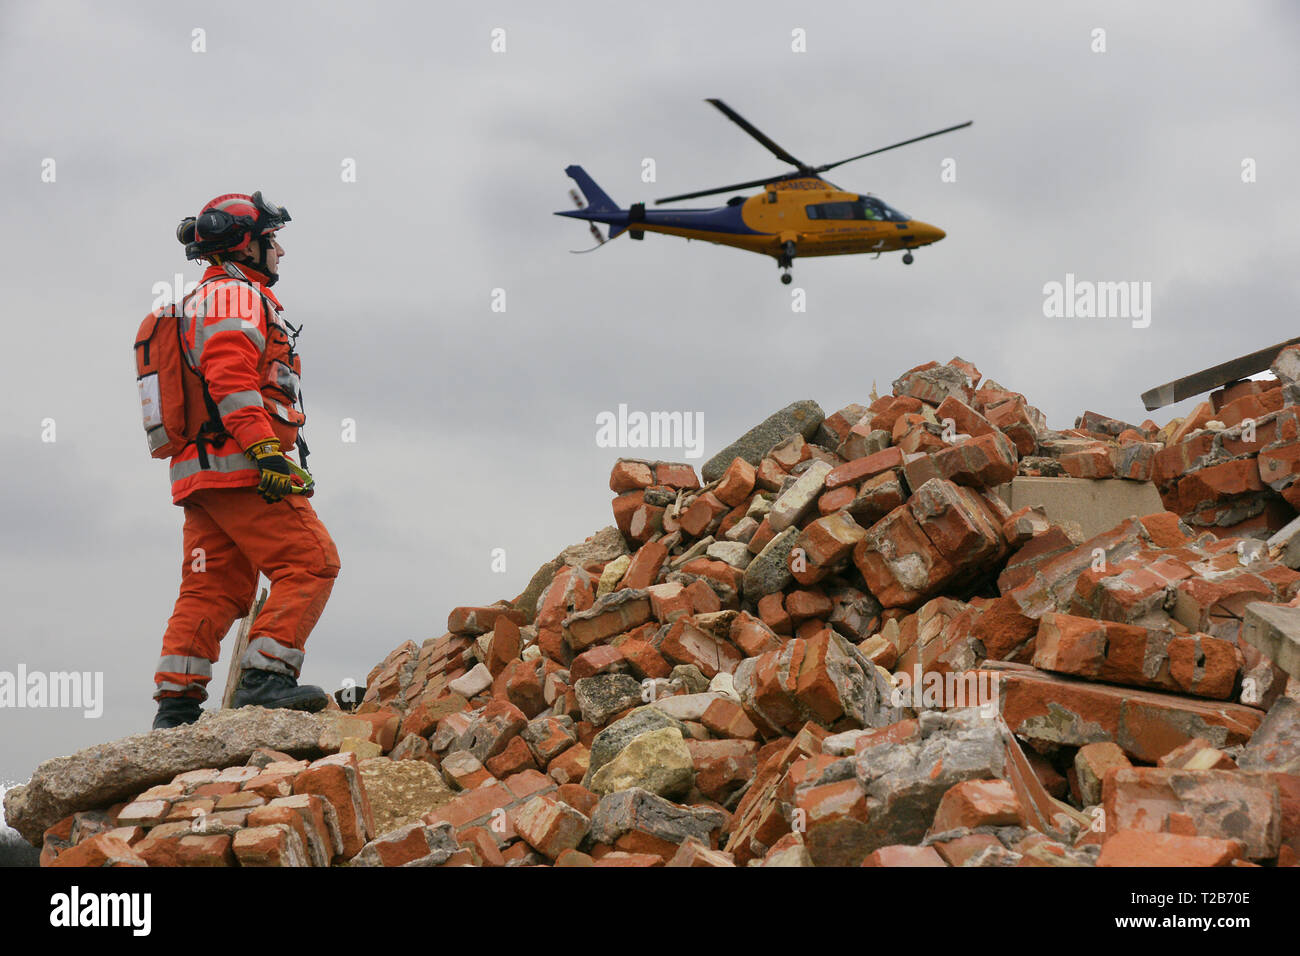 USAR incident, disaster zone, building collapse - Stock Image